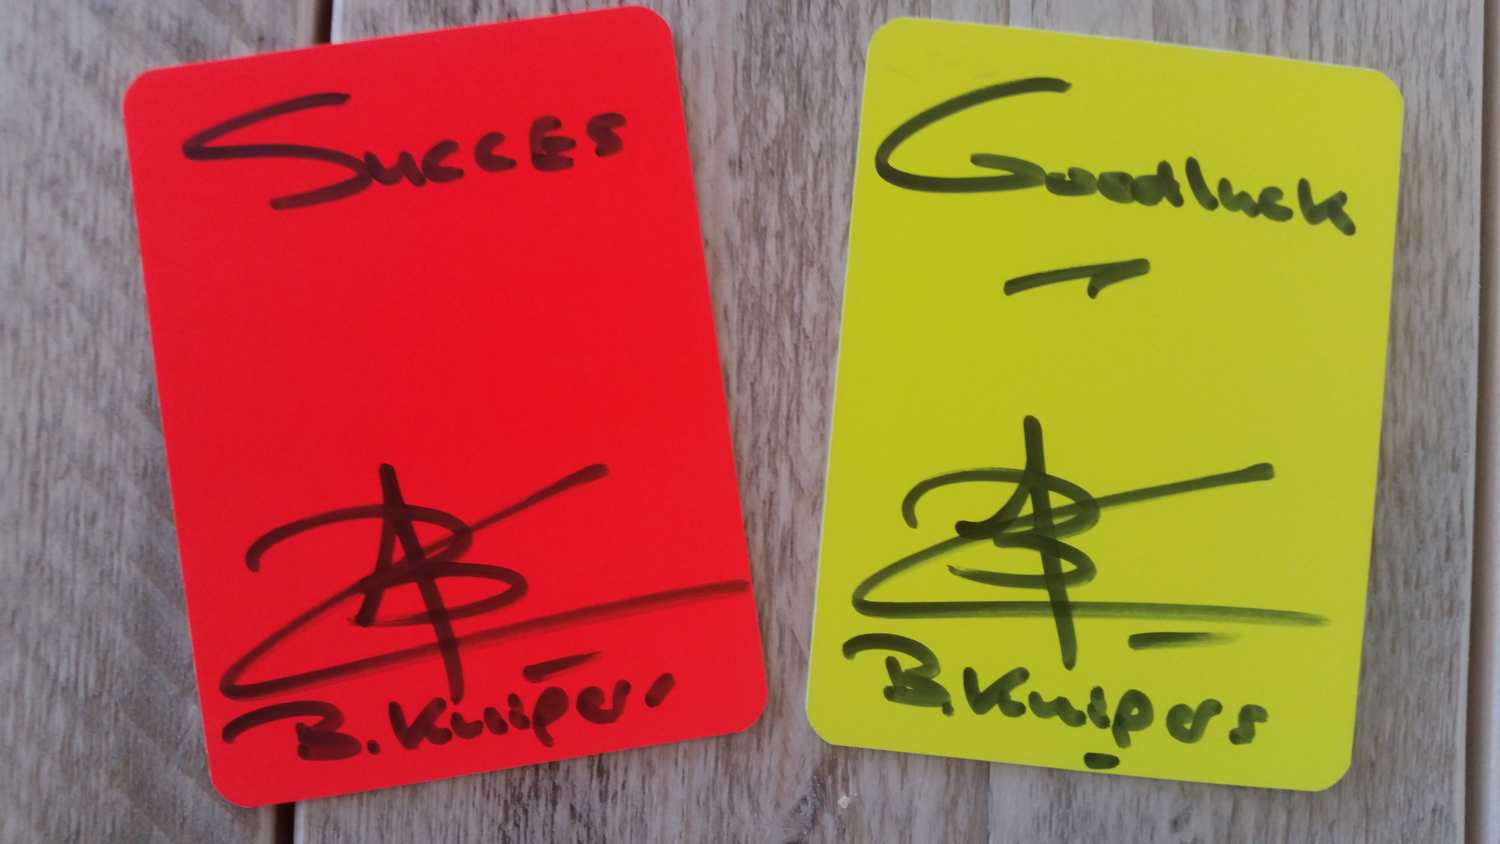 Signed cards by Bjorn Kuipers